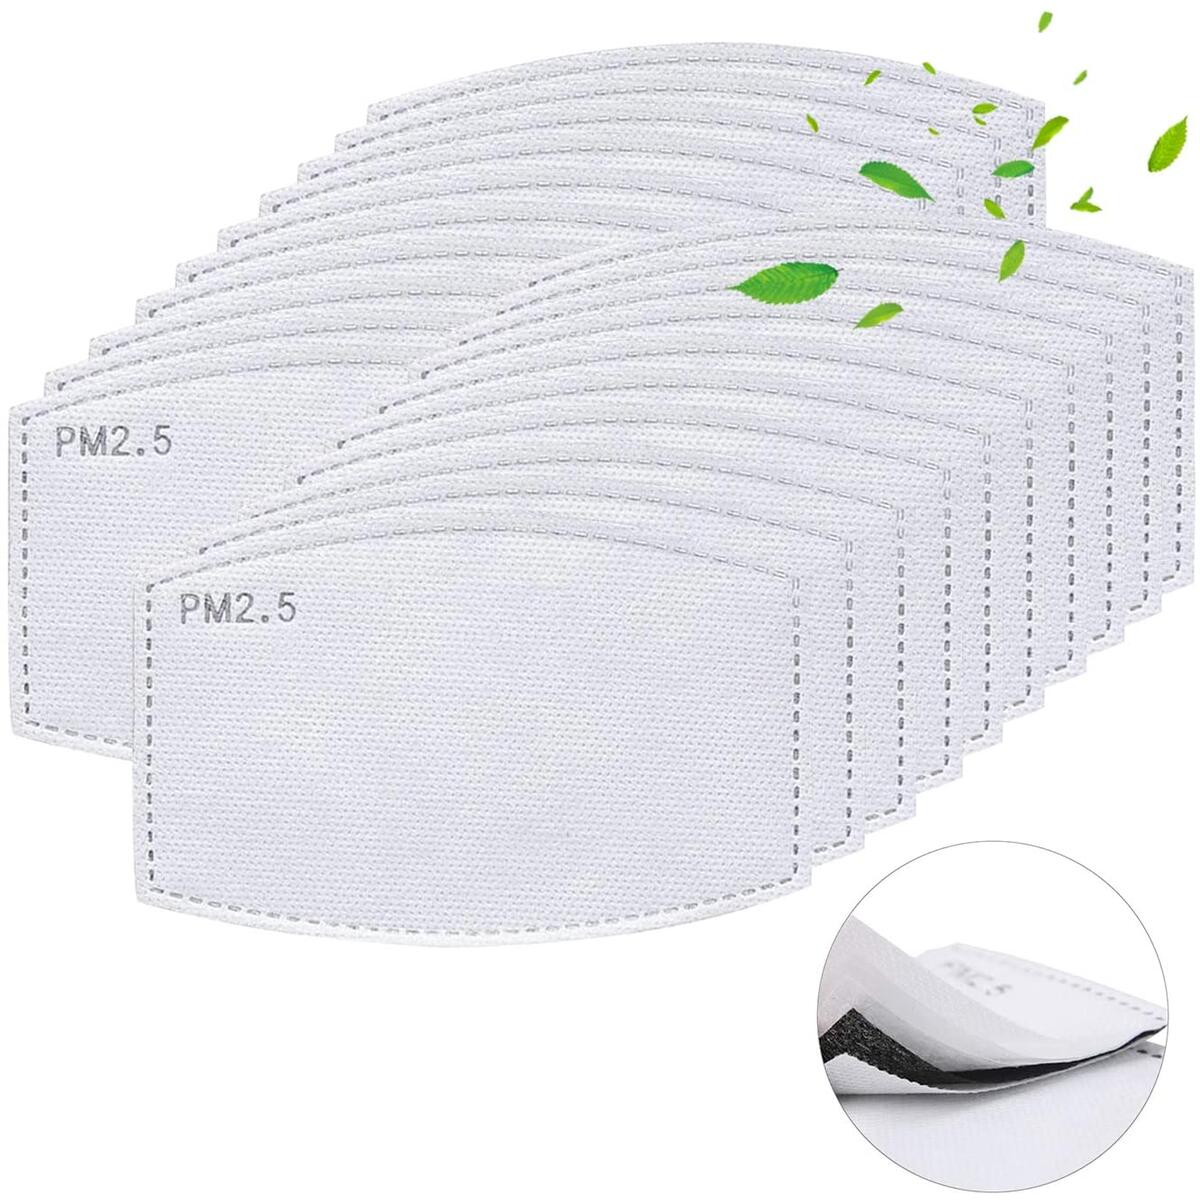 PM 2.5 Activated Carbon Filter Insert 5 Layers Protective Replacements Anti Haze Filter Paper (20PCS)